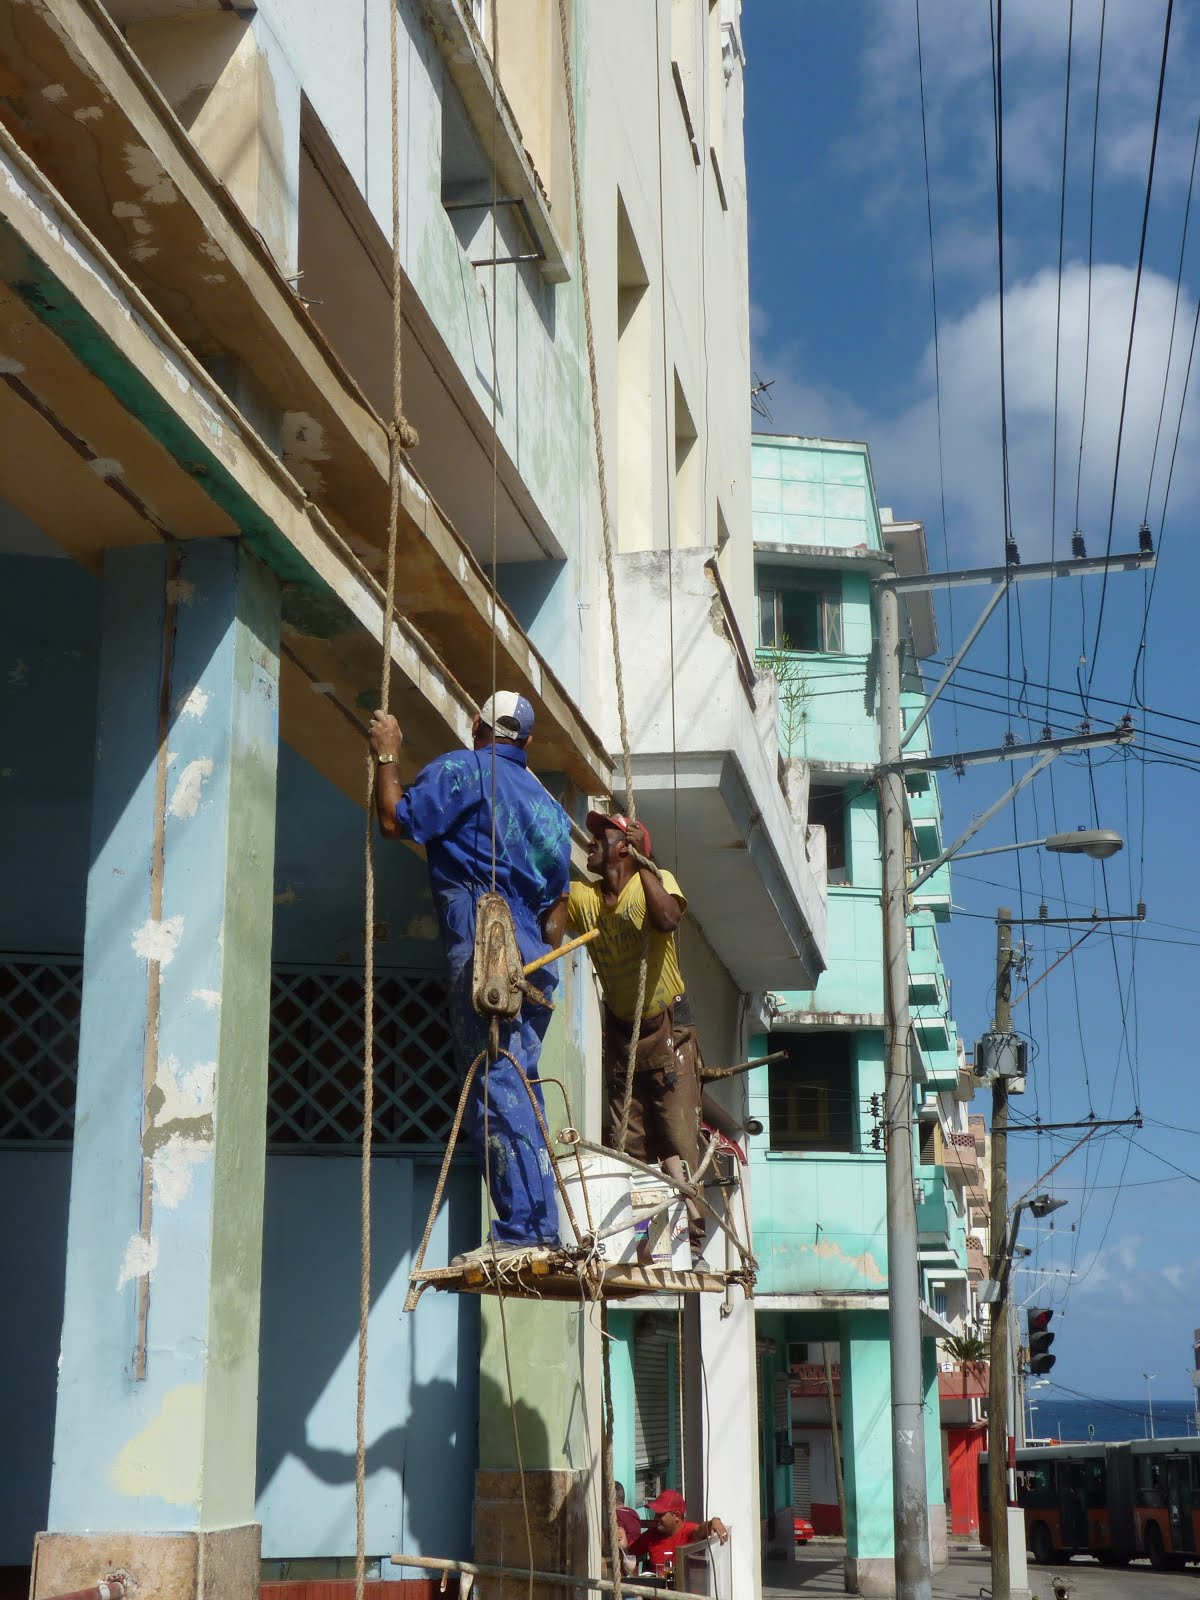 Two men working on a building.